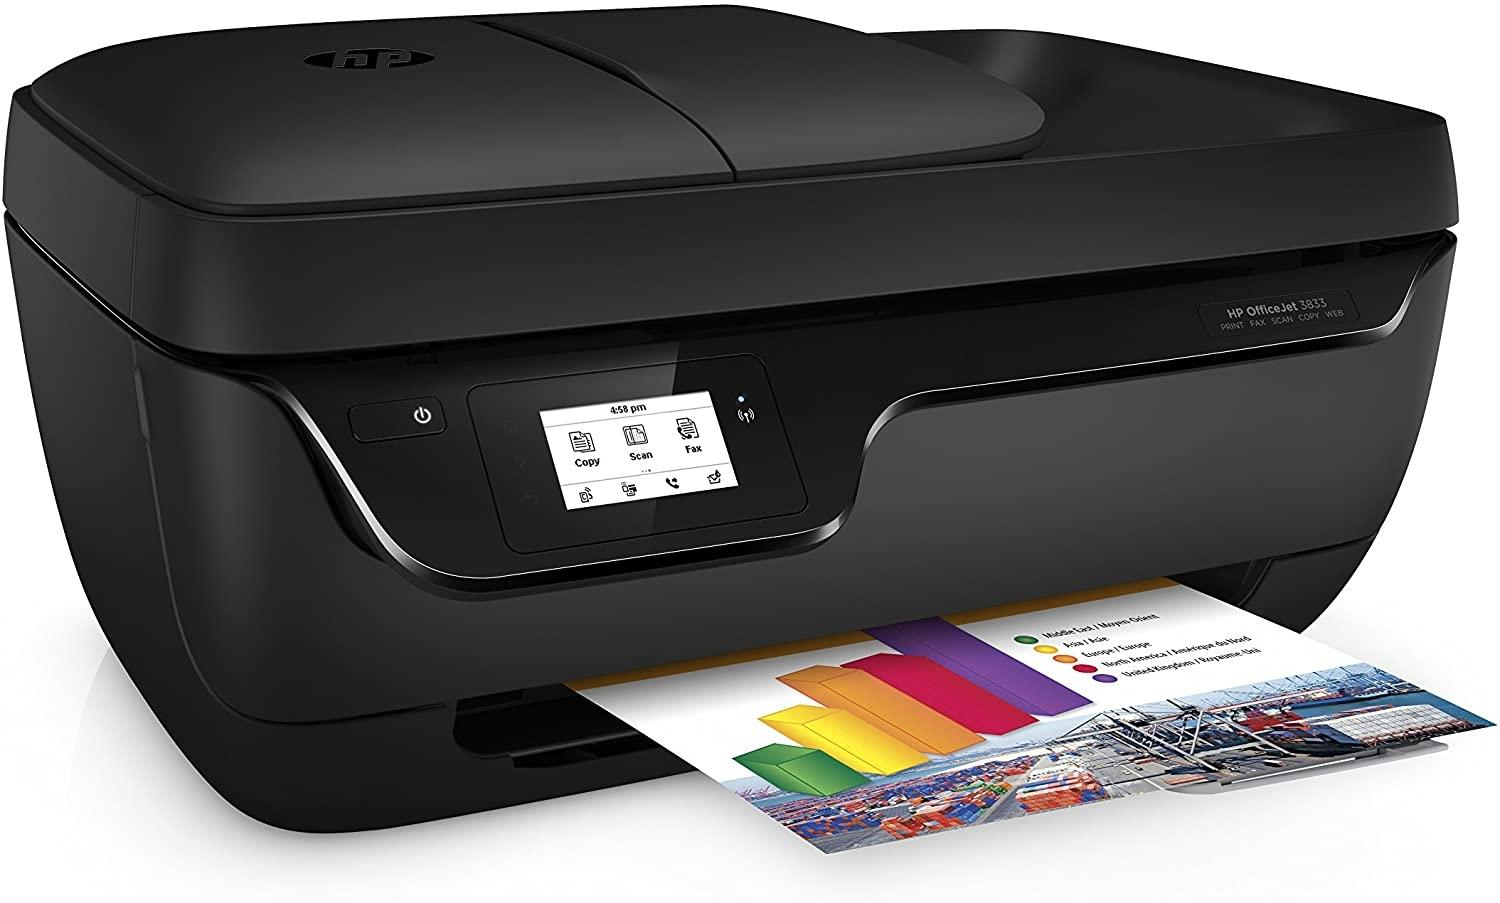 HP Multifuncion officejet 3833 color wifi USB